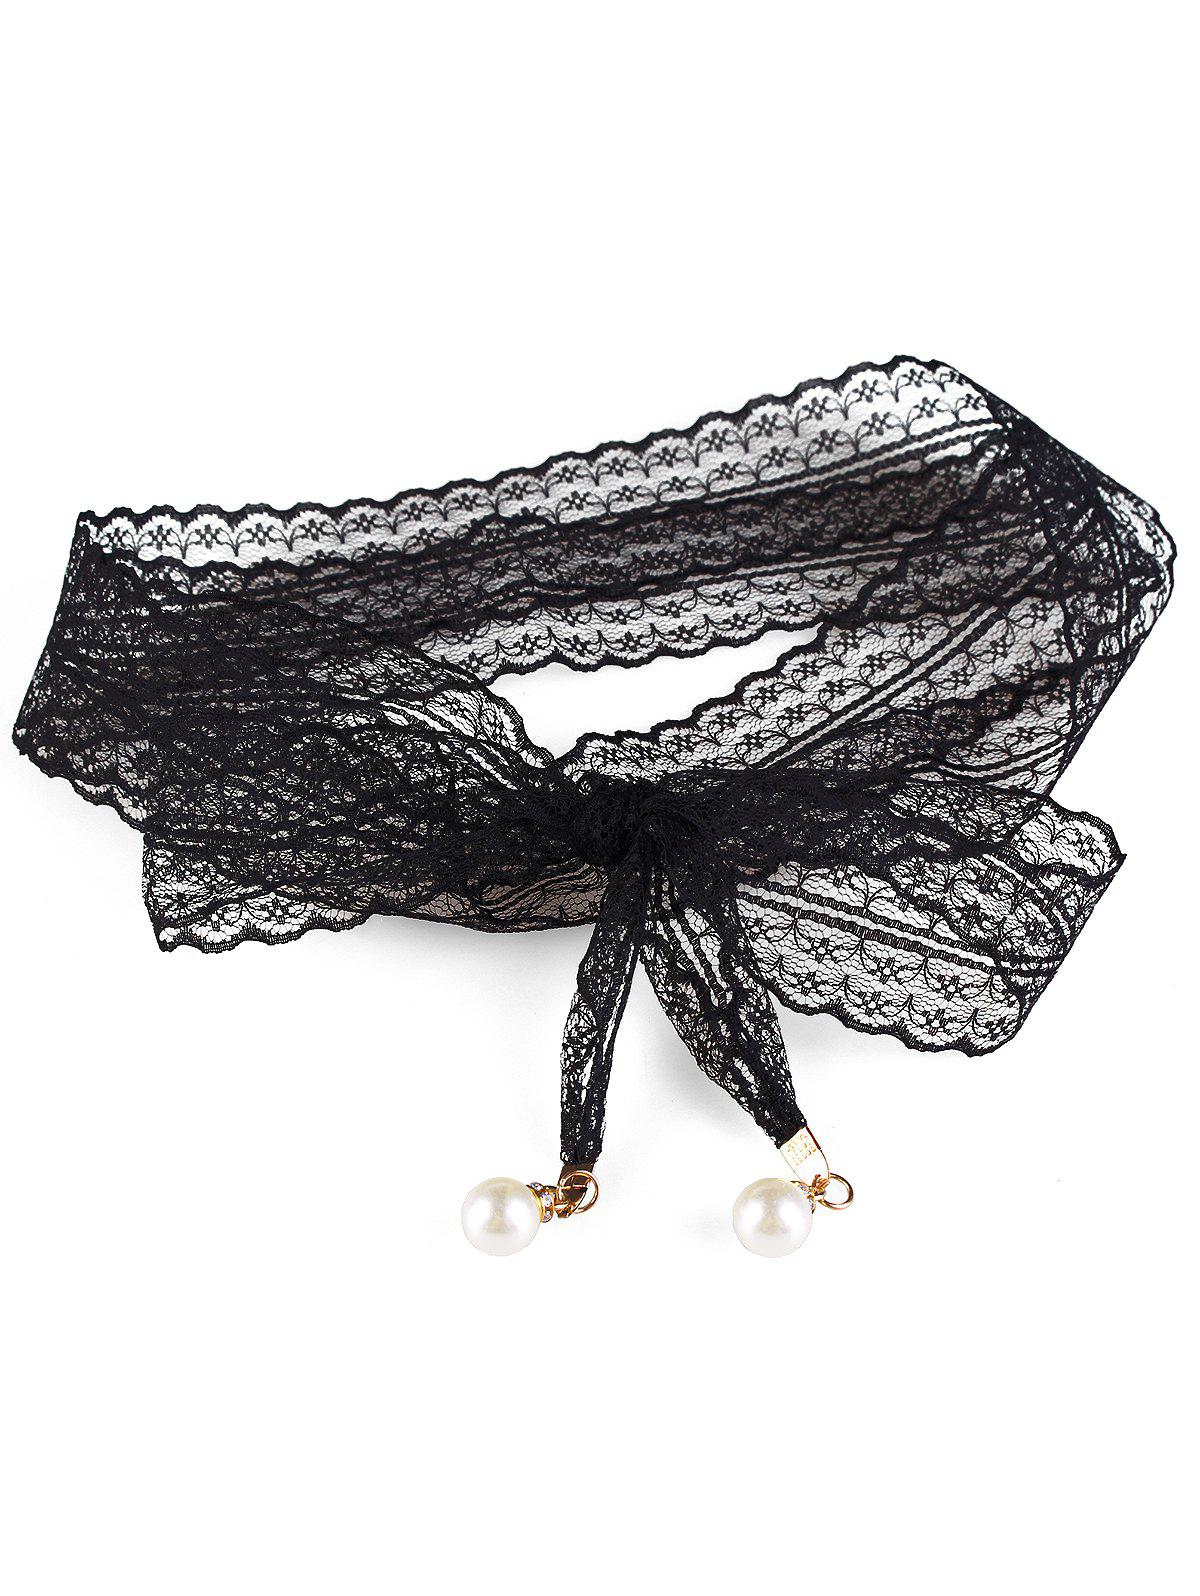 Stylish Faux Pearl Lace Dress Sash Belt - BLACK